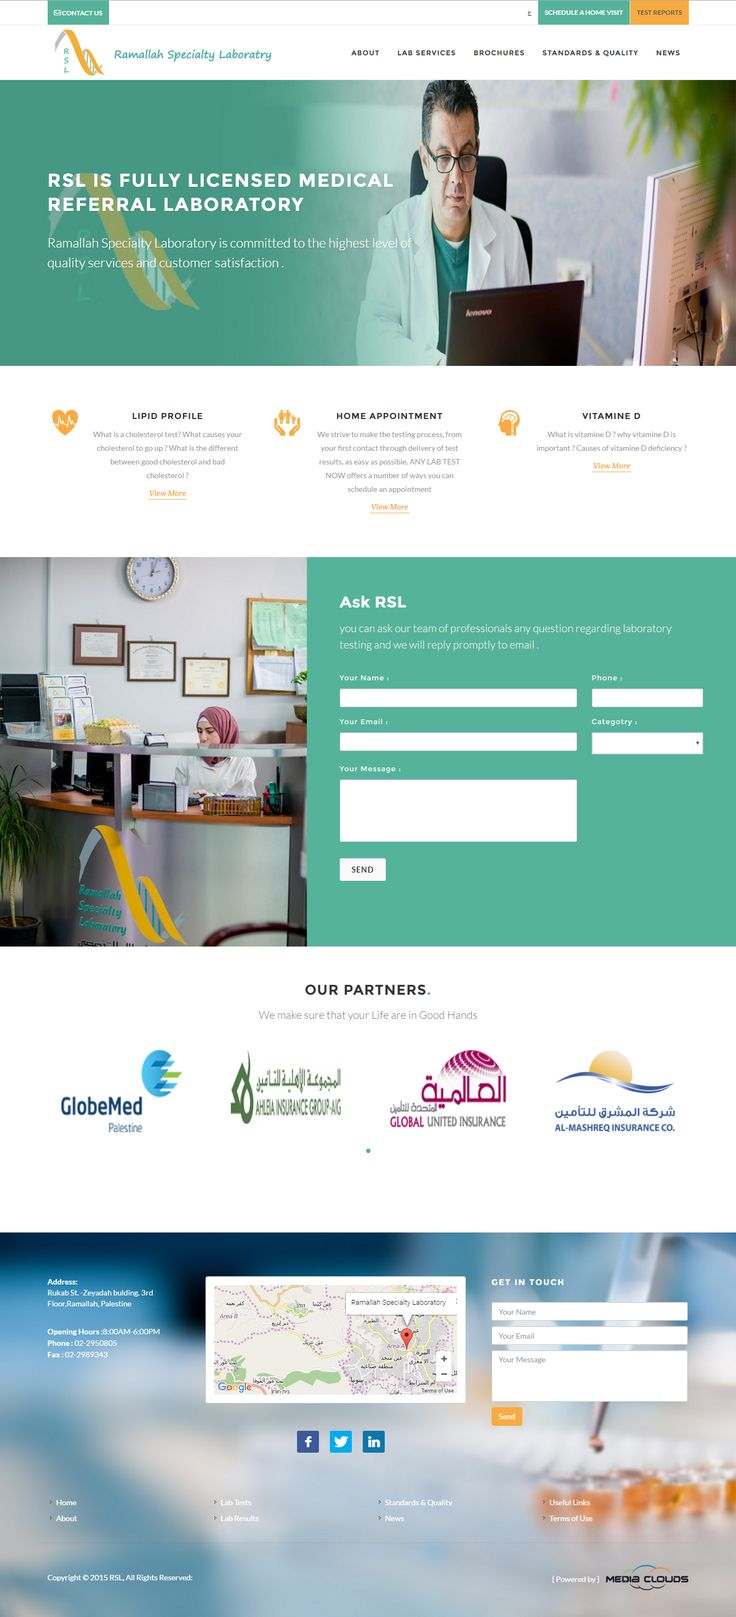 Website development and design for Ramallah Specialty Laboratory.